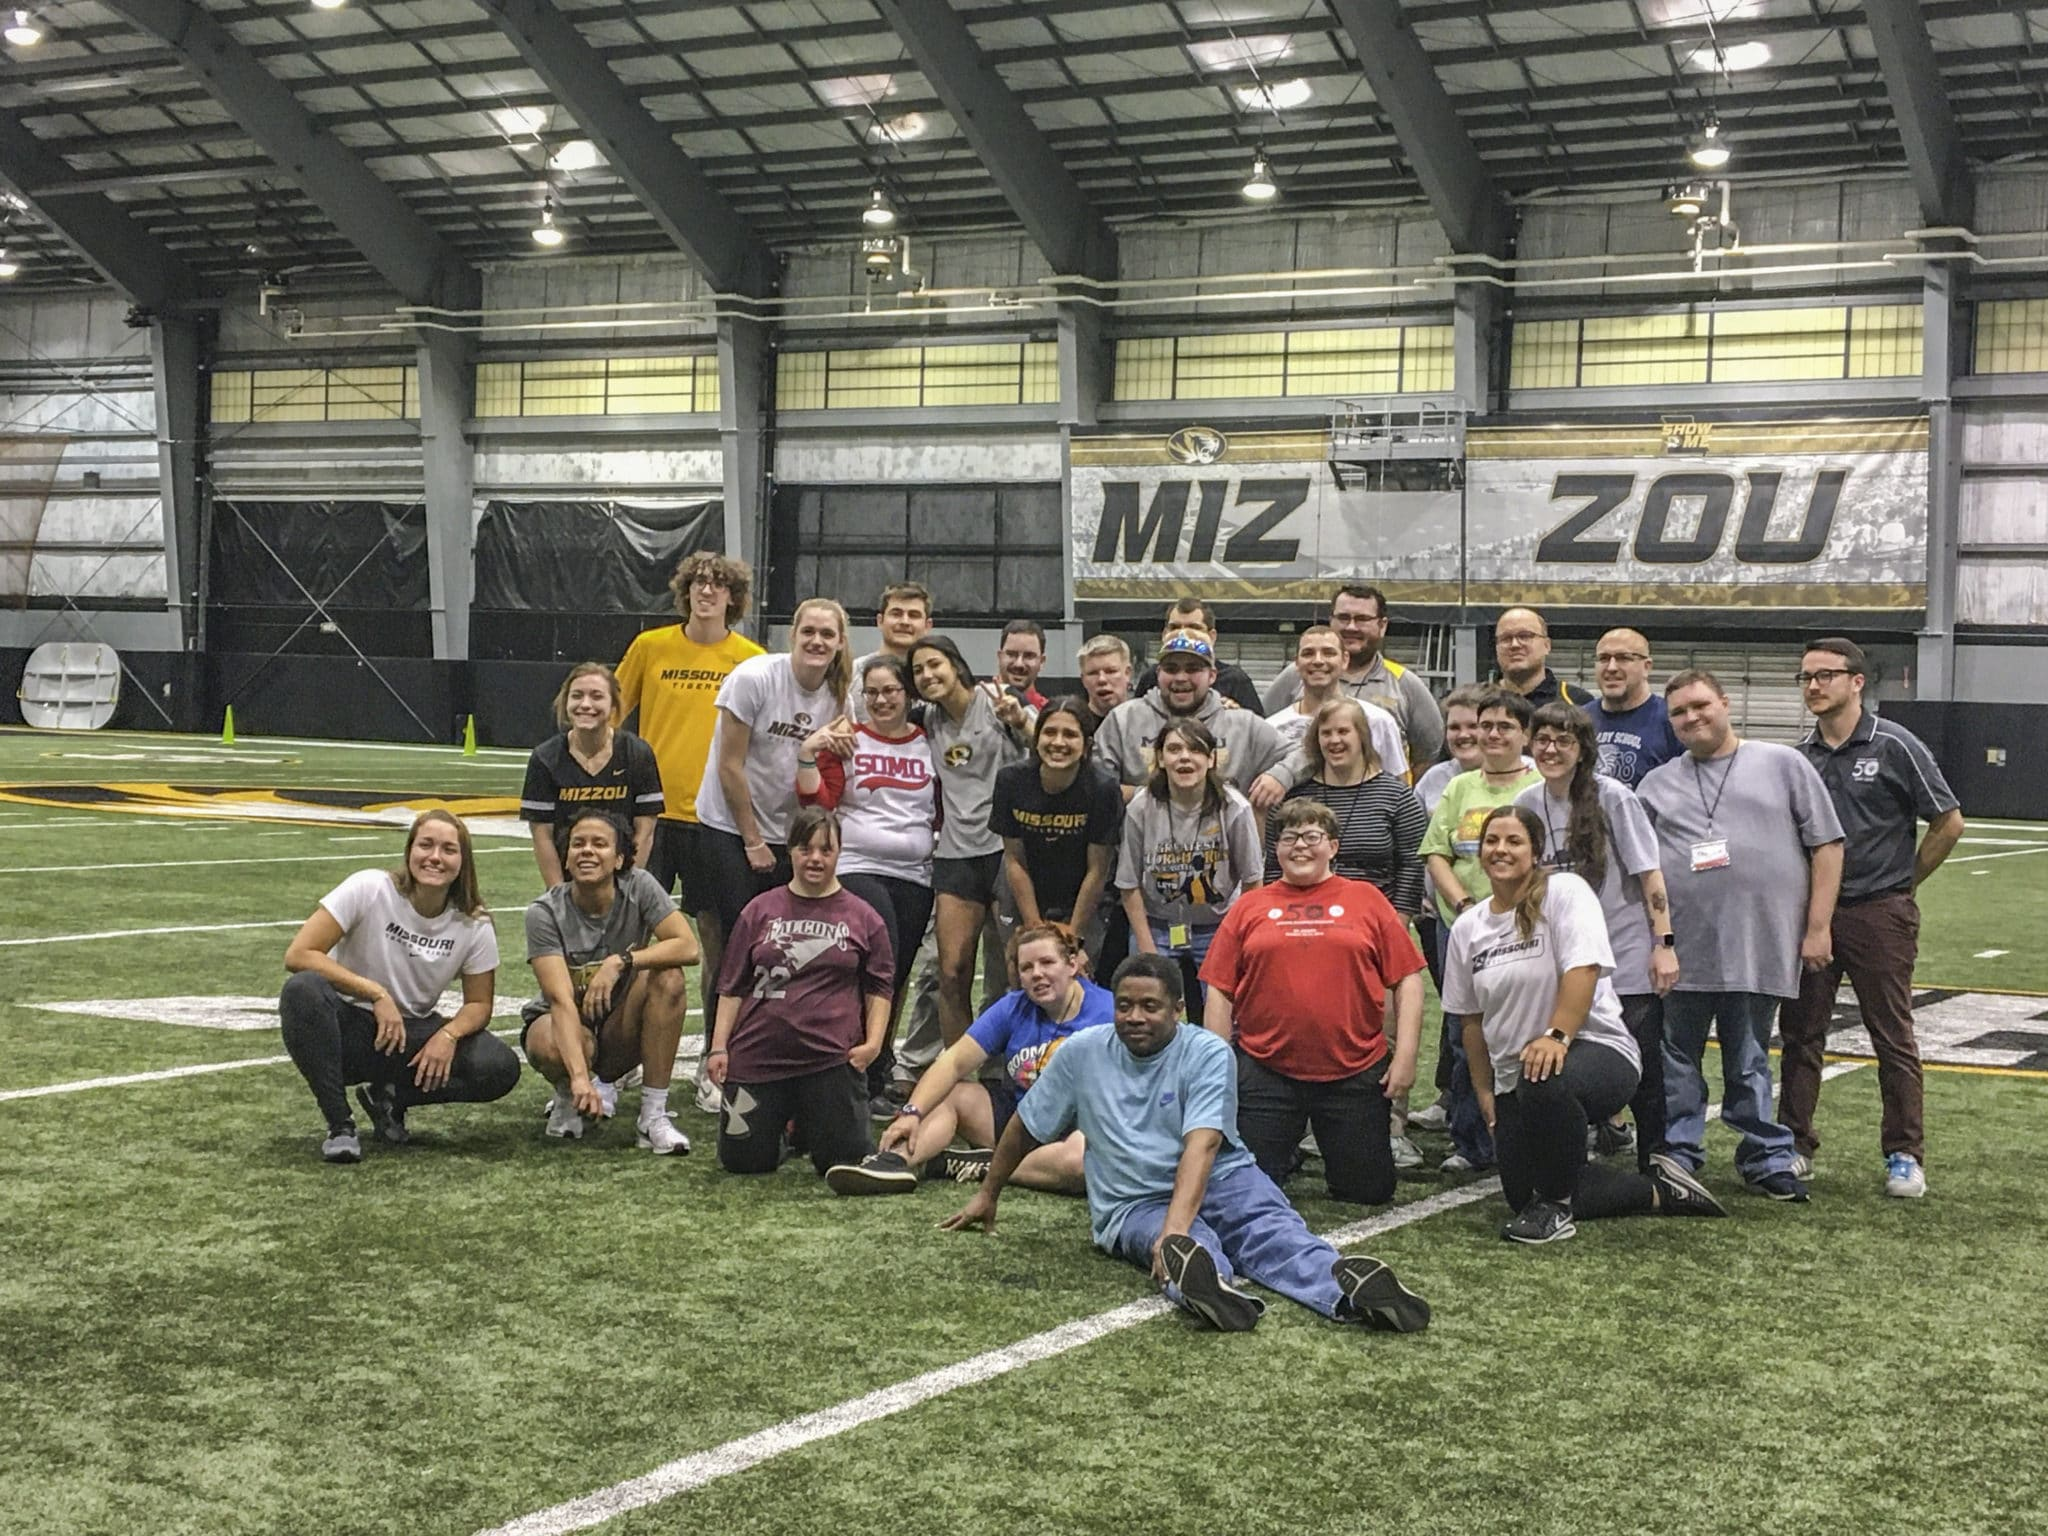 A group photo of athlete-leaders, mentors, and Mizzou student-athletes at the Mizzou Athletic Training Facility